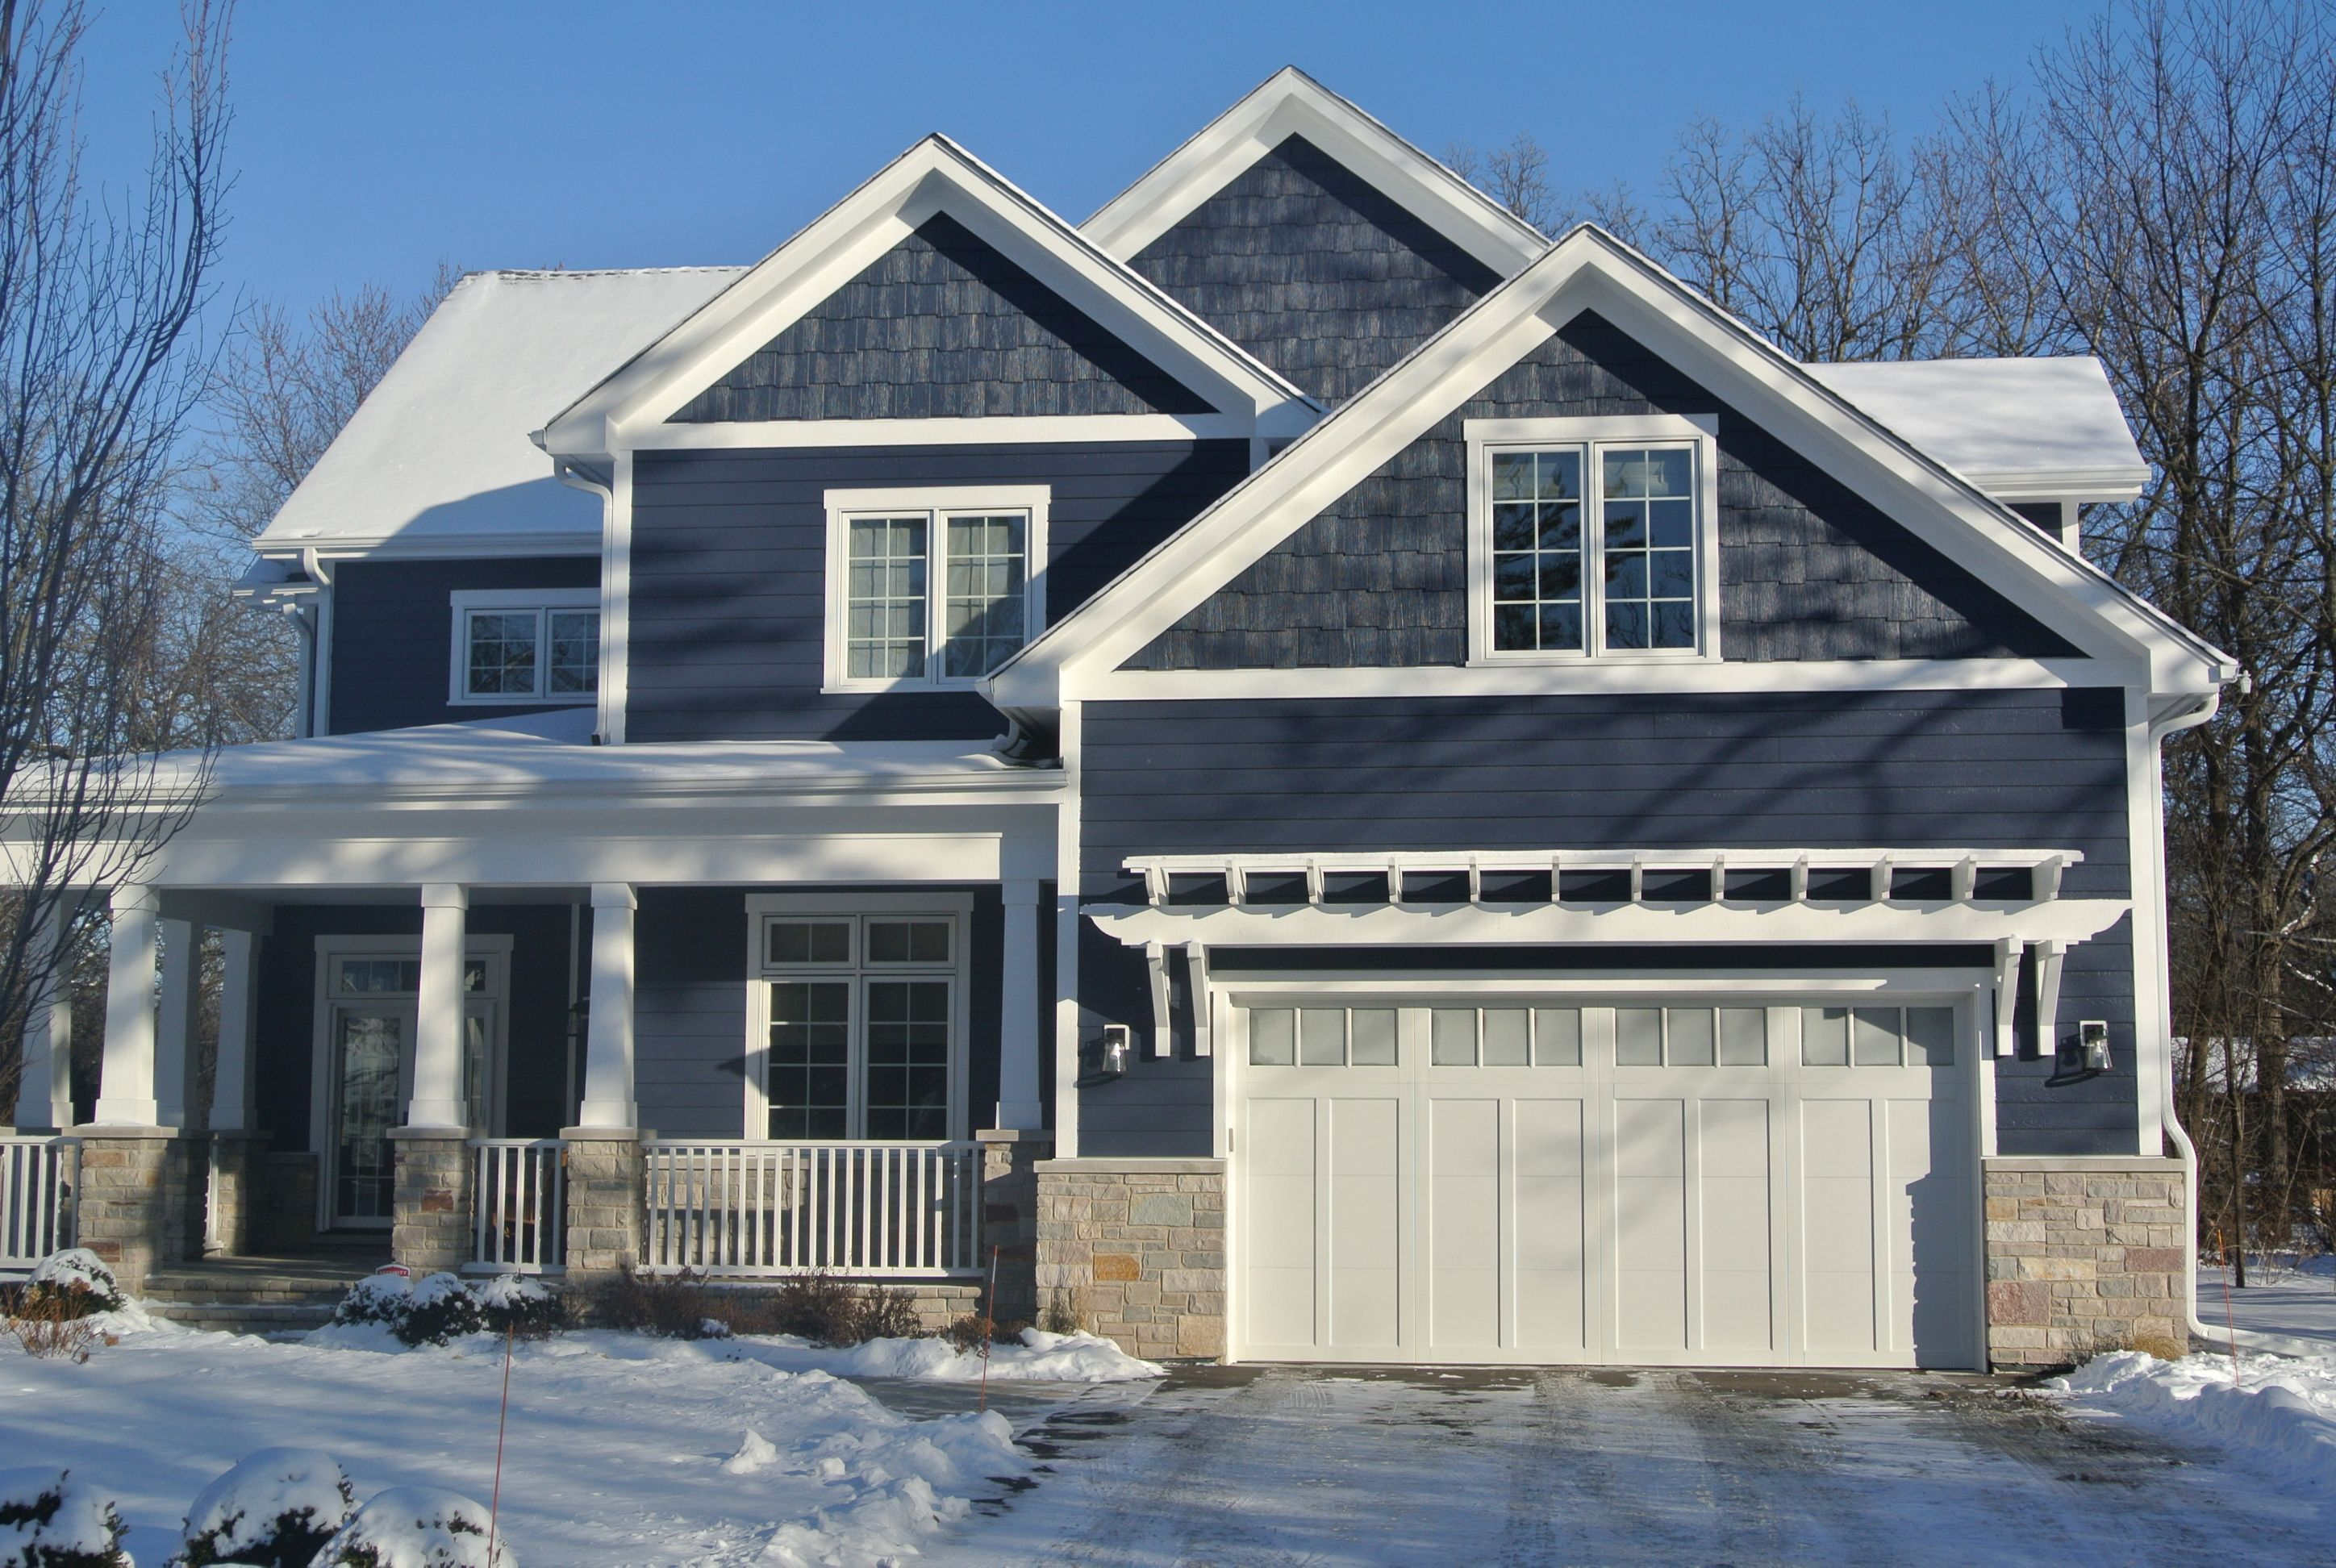 Dark blue colored siding with white trim. White tapered porch columns with white railings. Natural light brown stone veneer. White gutters. White garage doors.